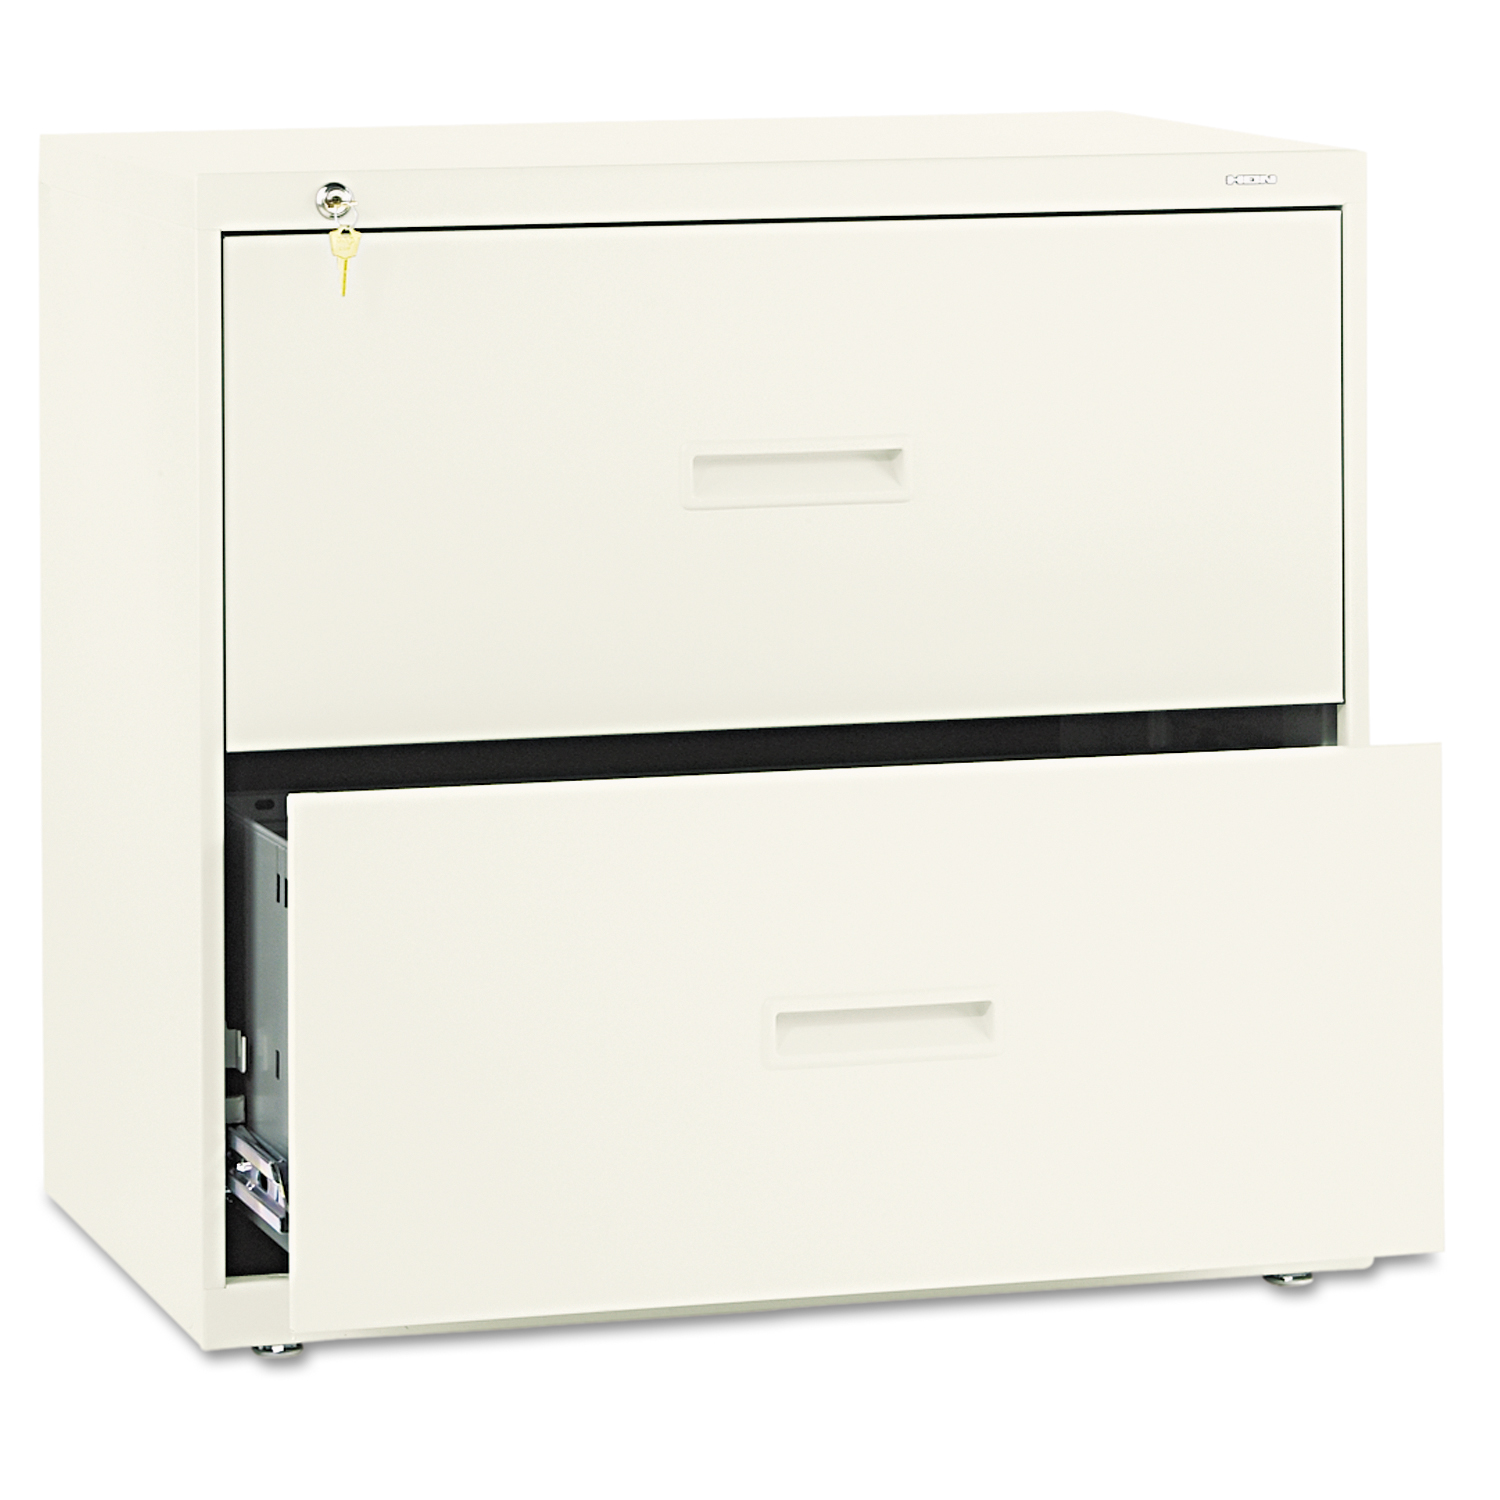 400 Series Two-Drawer Lateral File, 30w x 19-1/4d x 28-3/8h, Putty